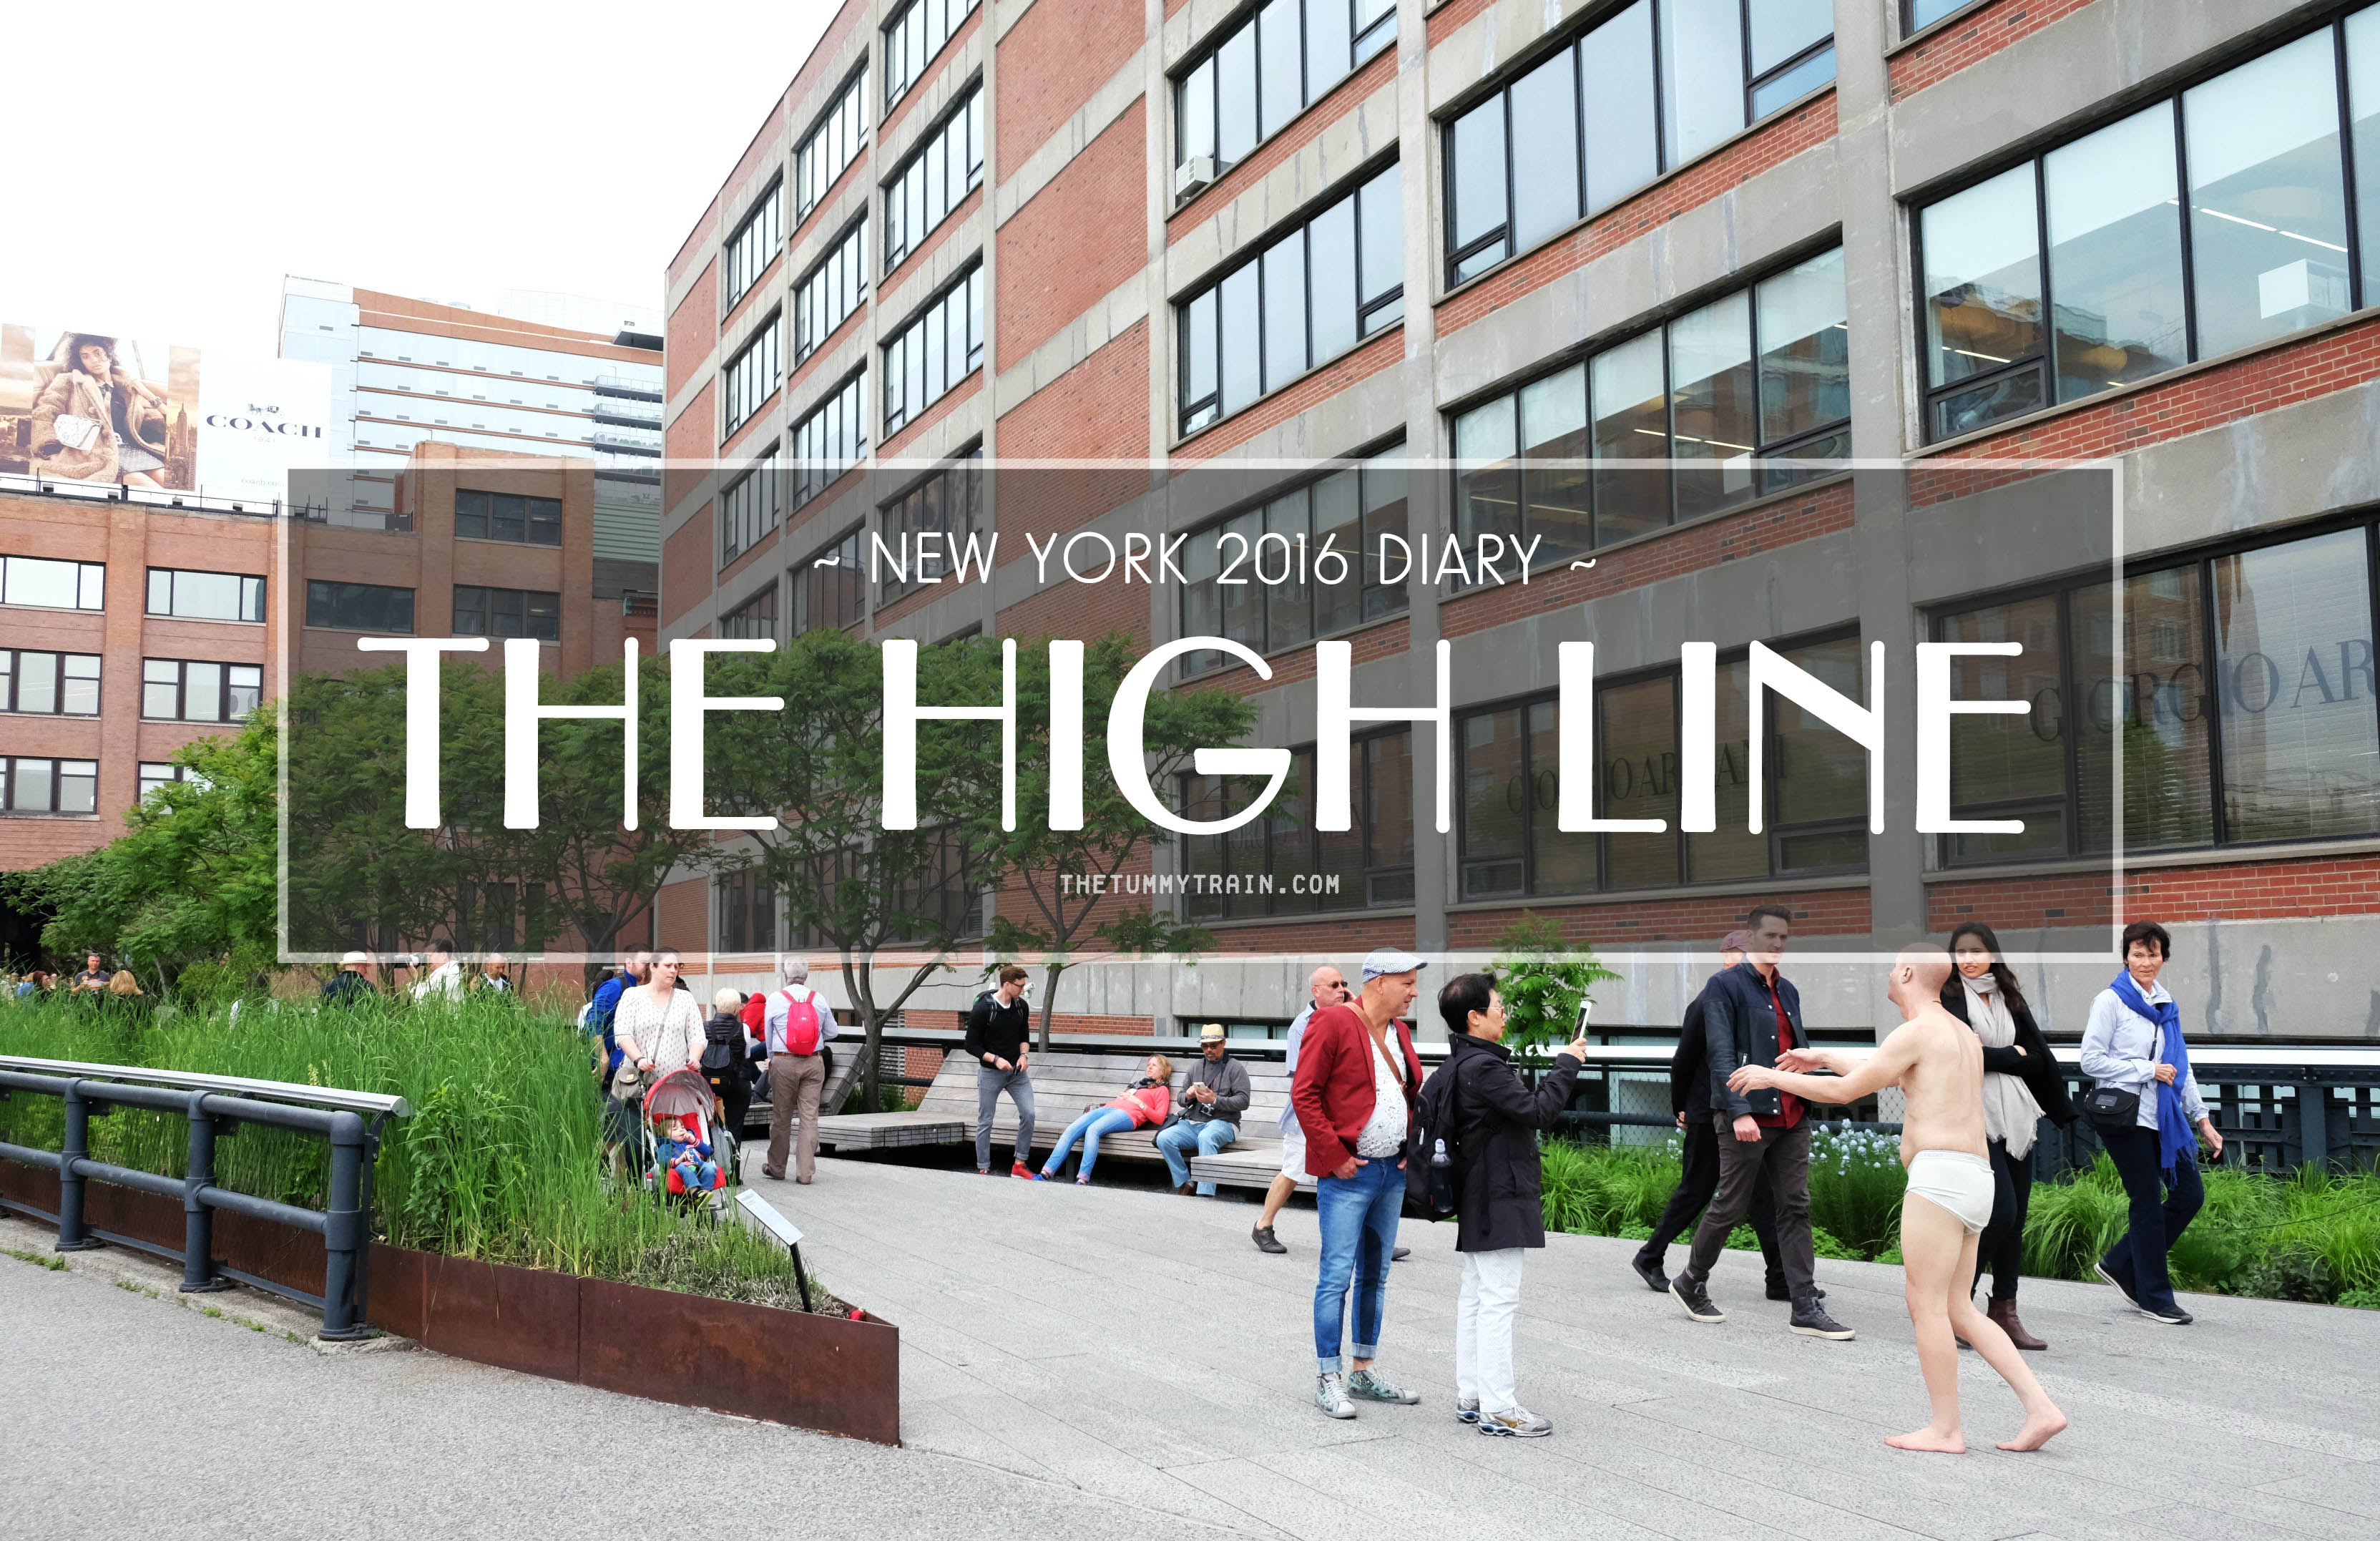 High Line Title - USA 2016 Travel Diary: Walking on The High Line